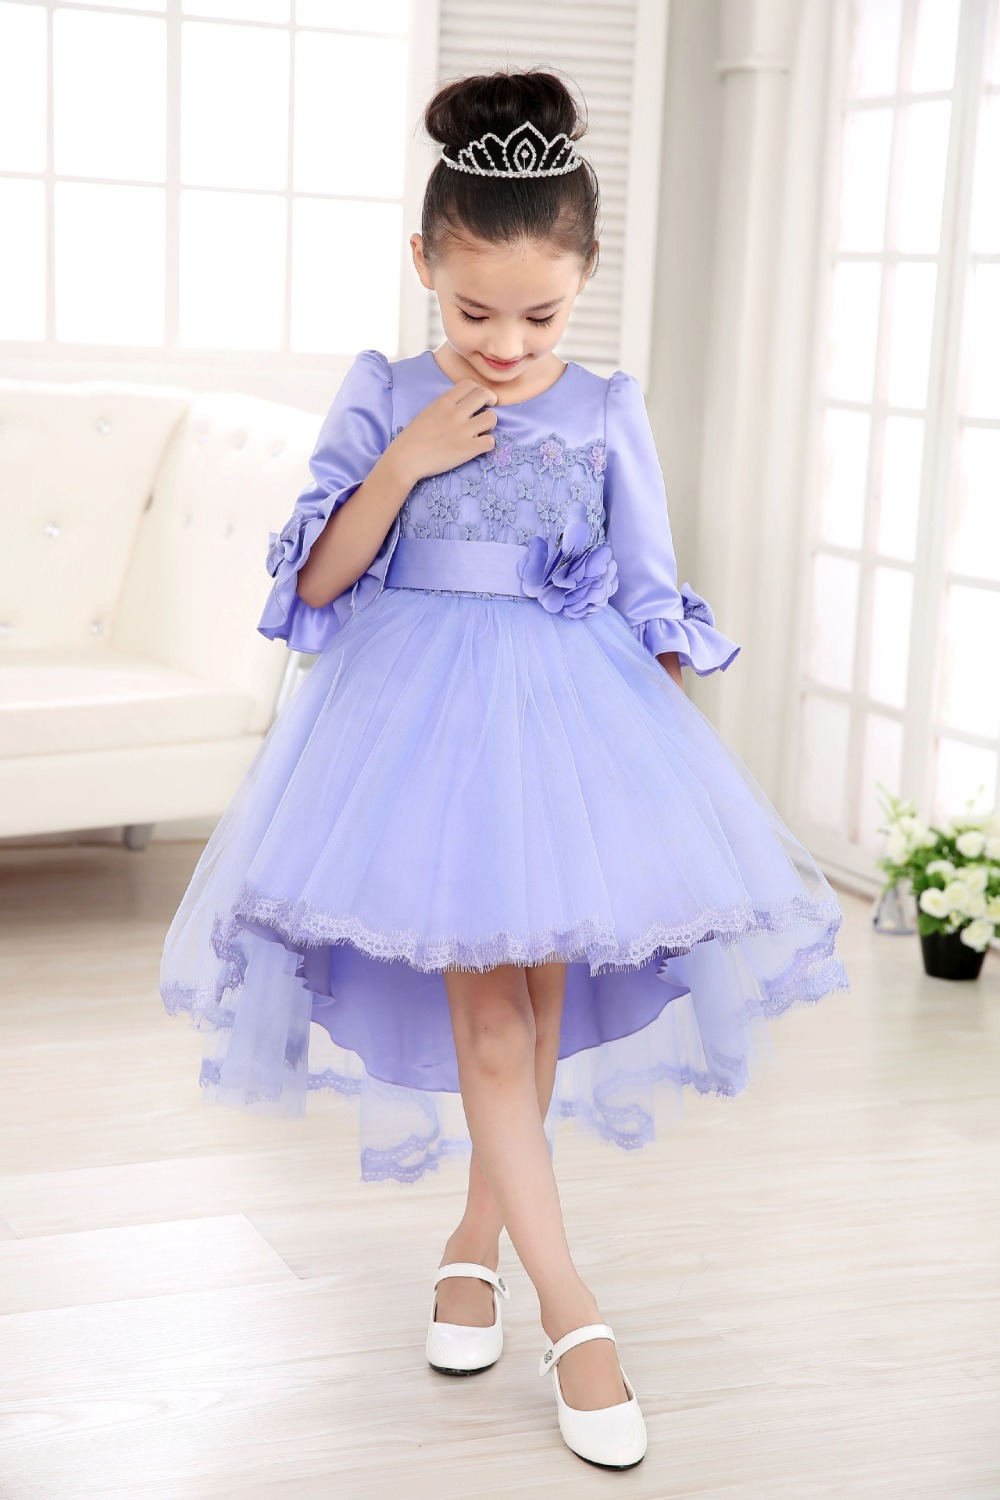 92b7f85c5 2019 Latest Design High Quality Girls Prom Dress Kids Party Wear Western  Dress With lace Tail For Wedding and Party-in Dresses from Mother & Kids on  ...